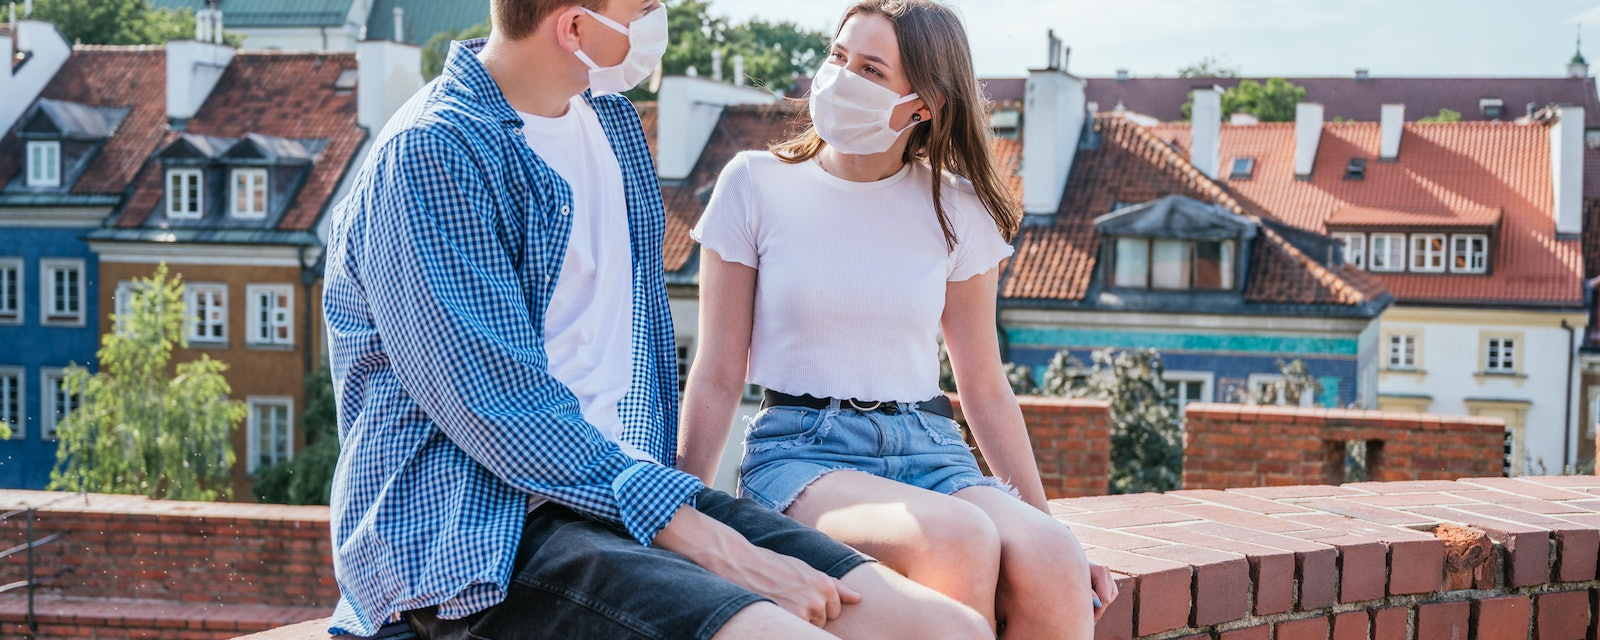 Wearing a mask on a date? Here's how to still feel confident and sexy.